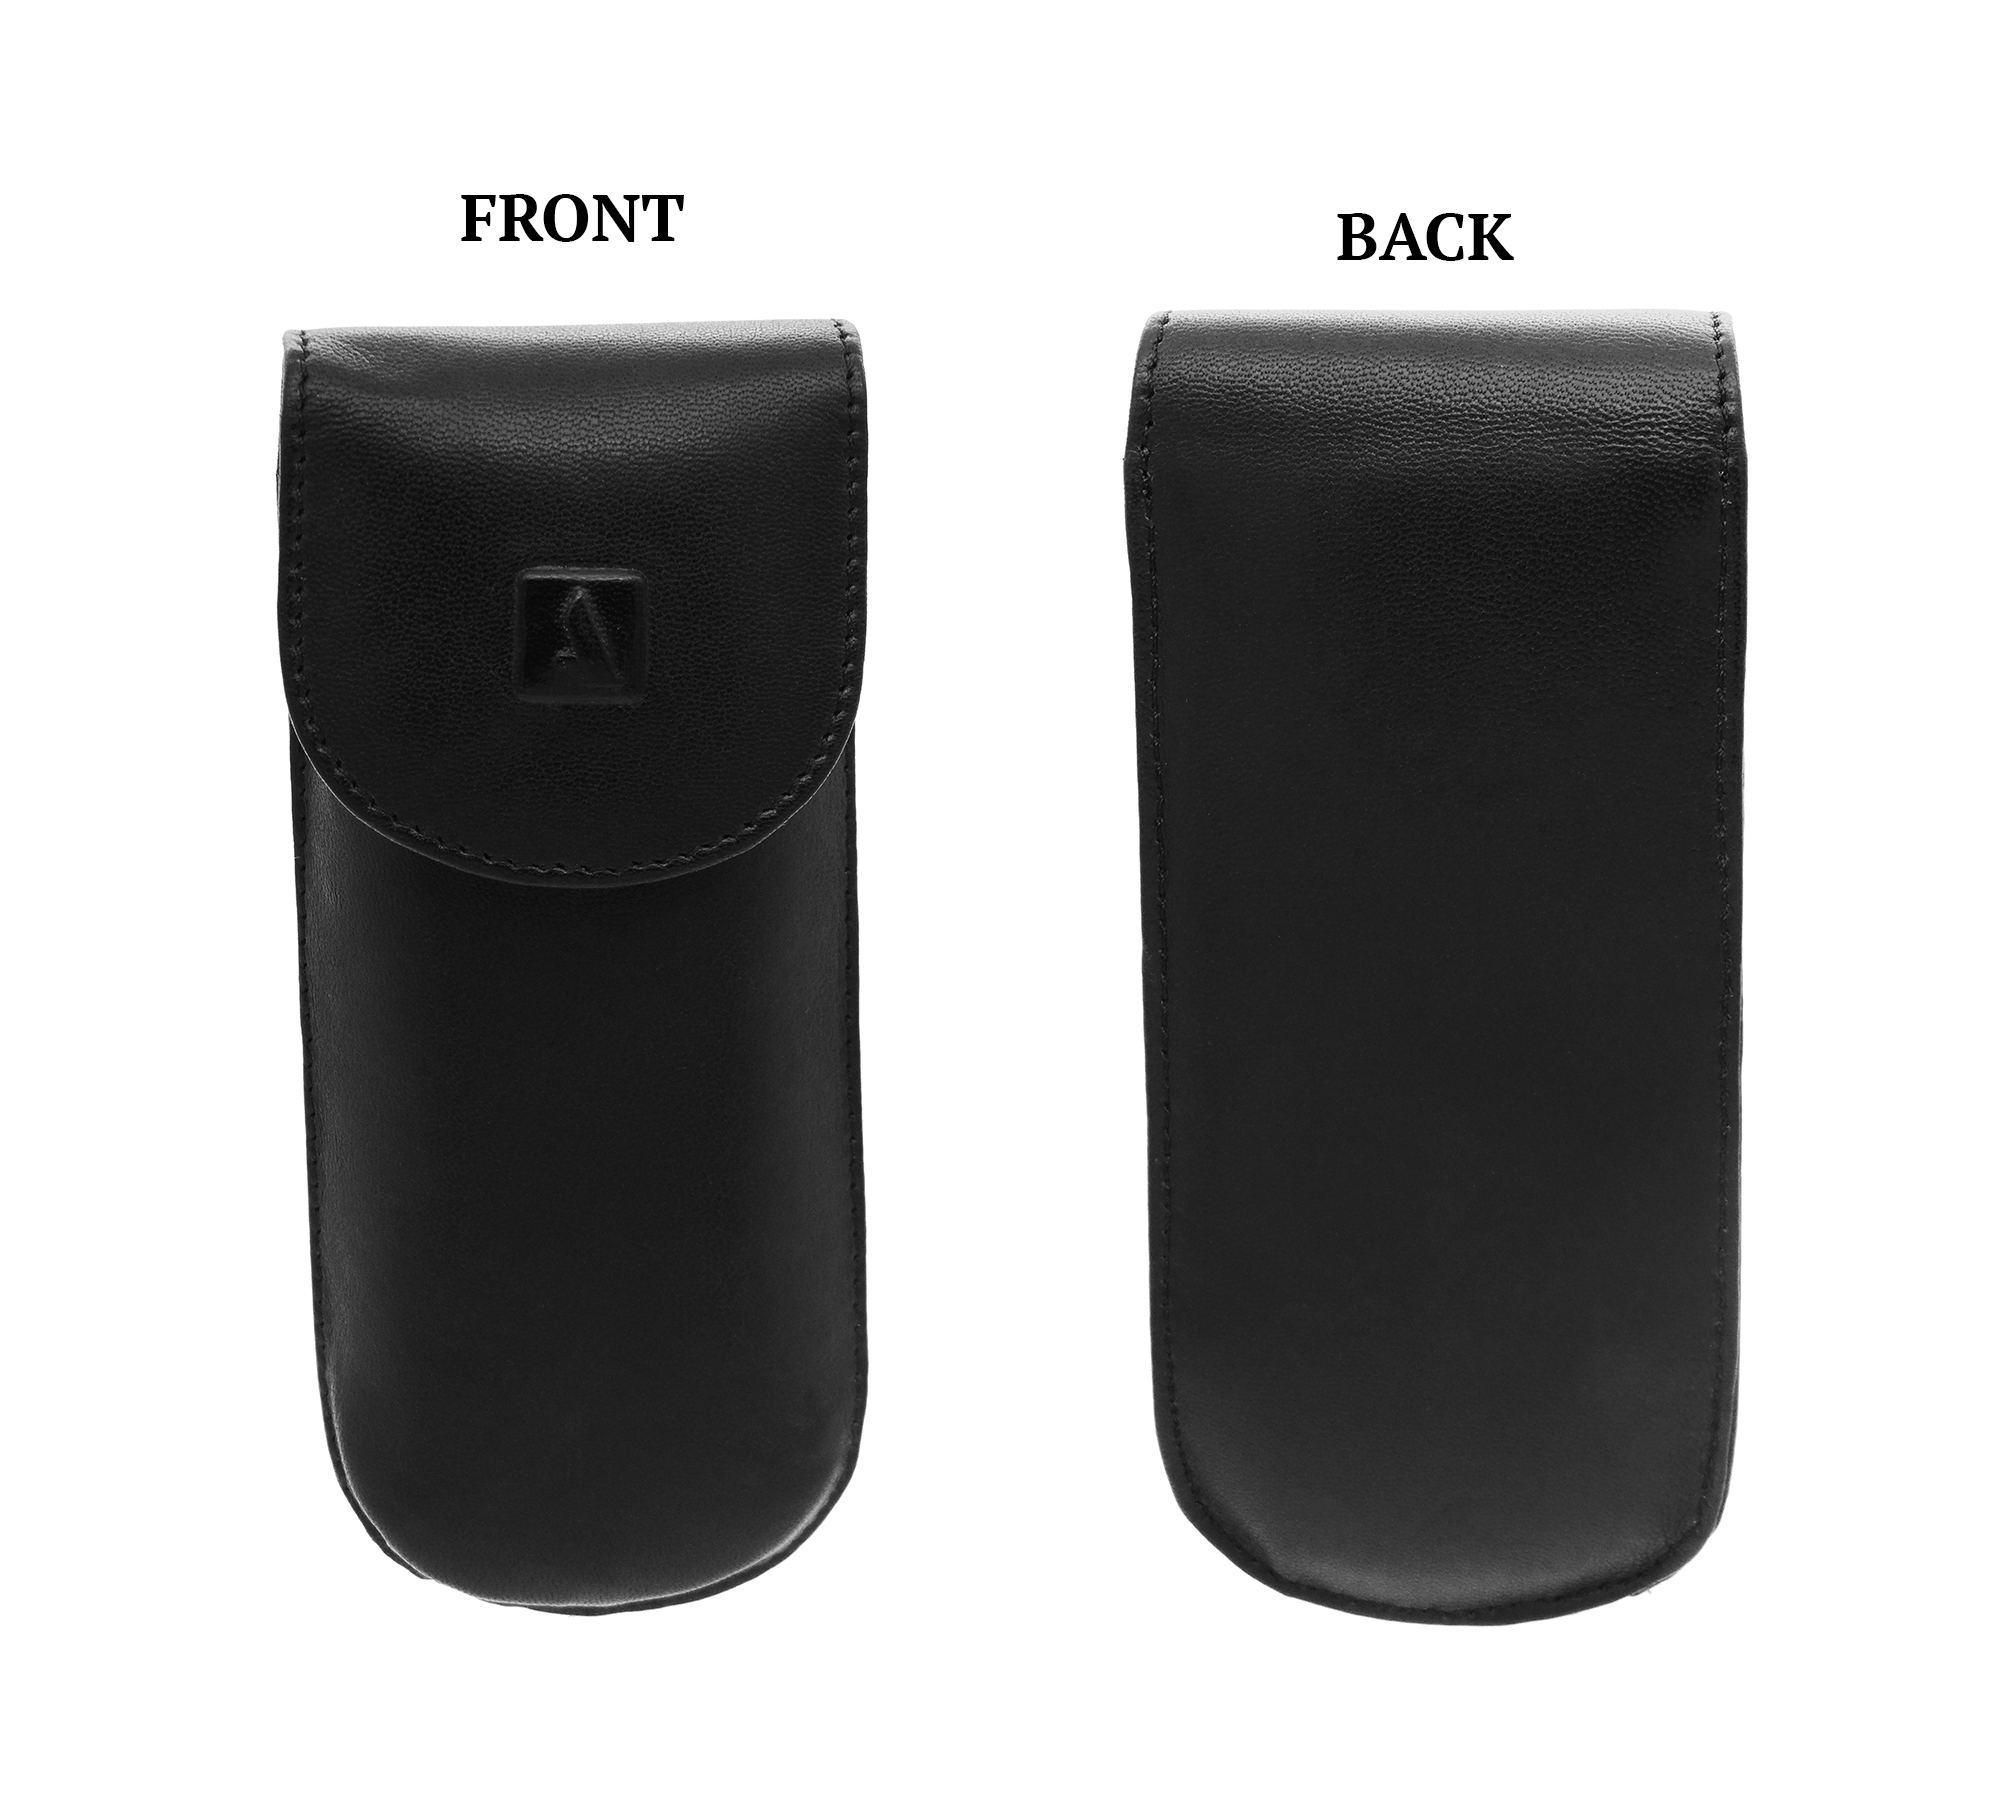 W74--Reading spectacle semi hard case in Genuine Leather - Black